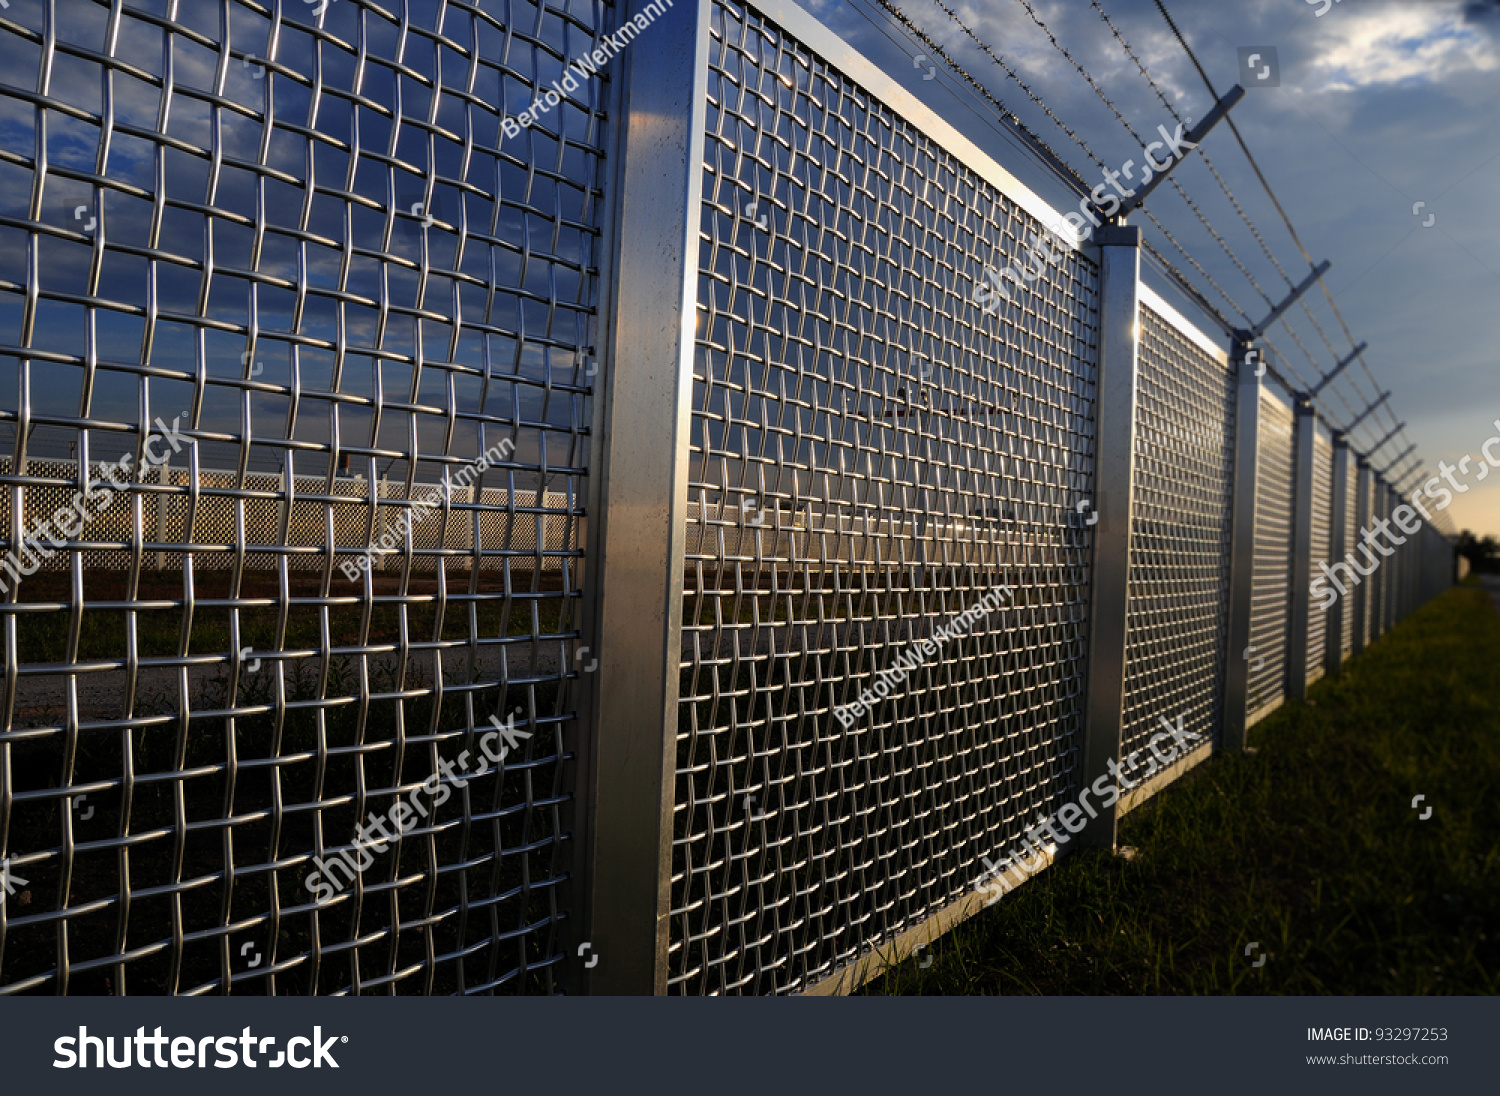 metal fence part metal grid fence stock photo edit now 93297253